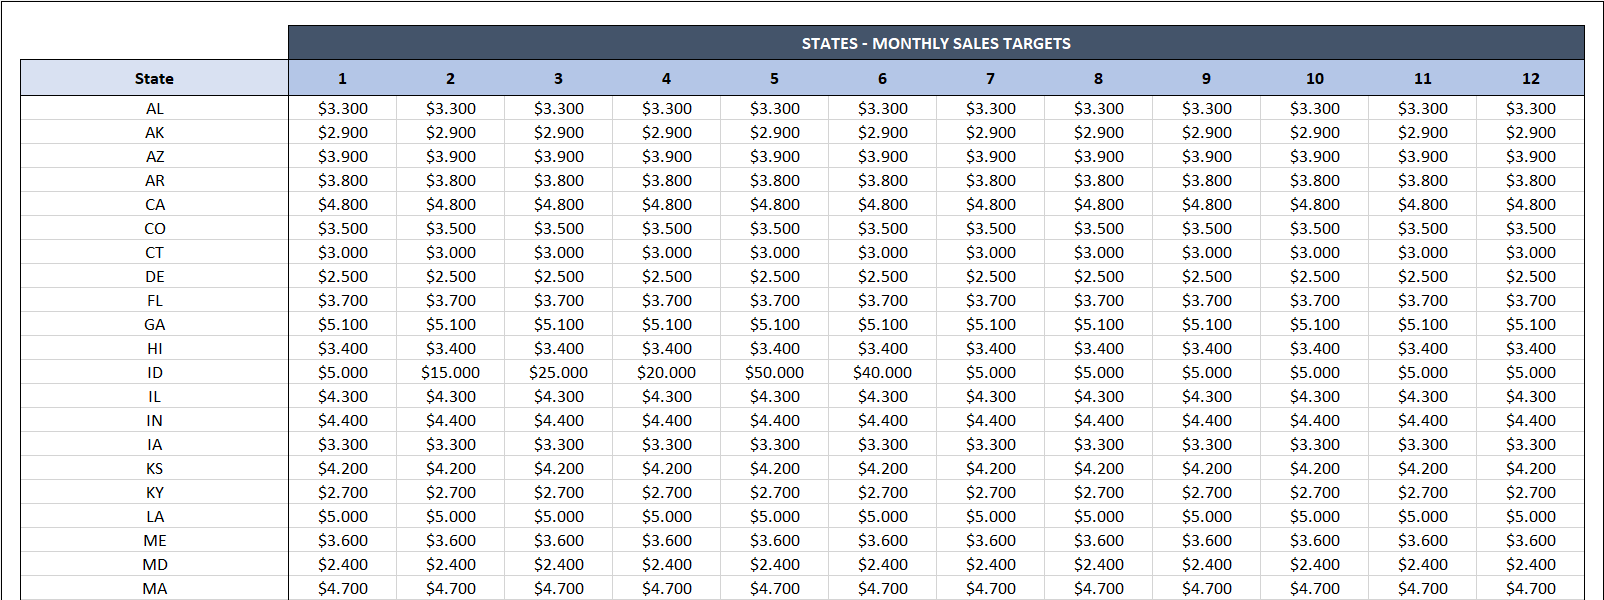 US Sales Report Template-06-Target Data